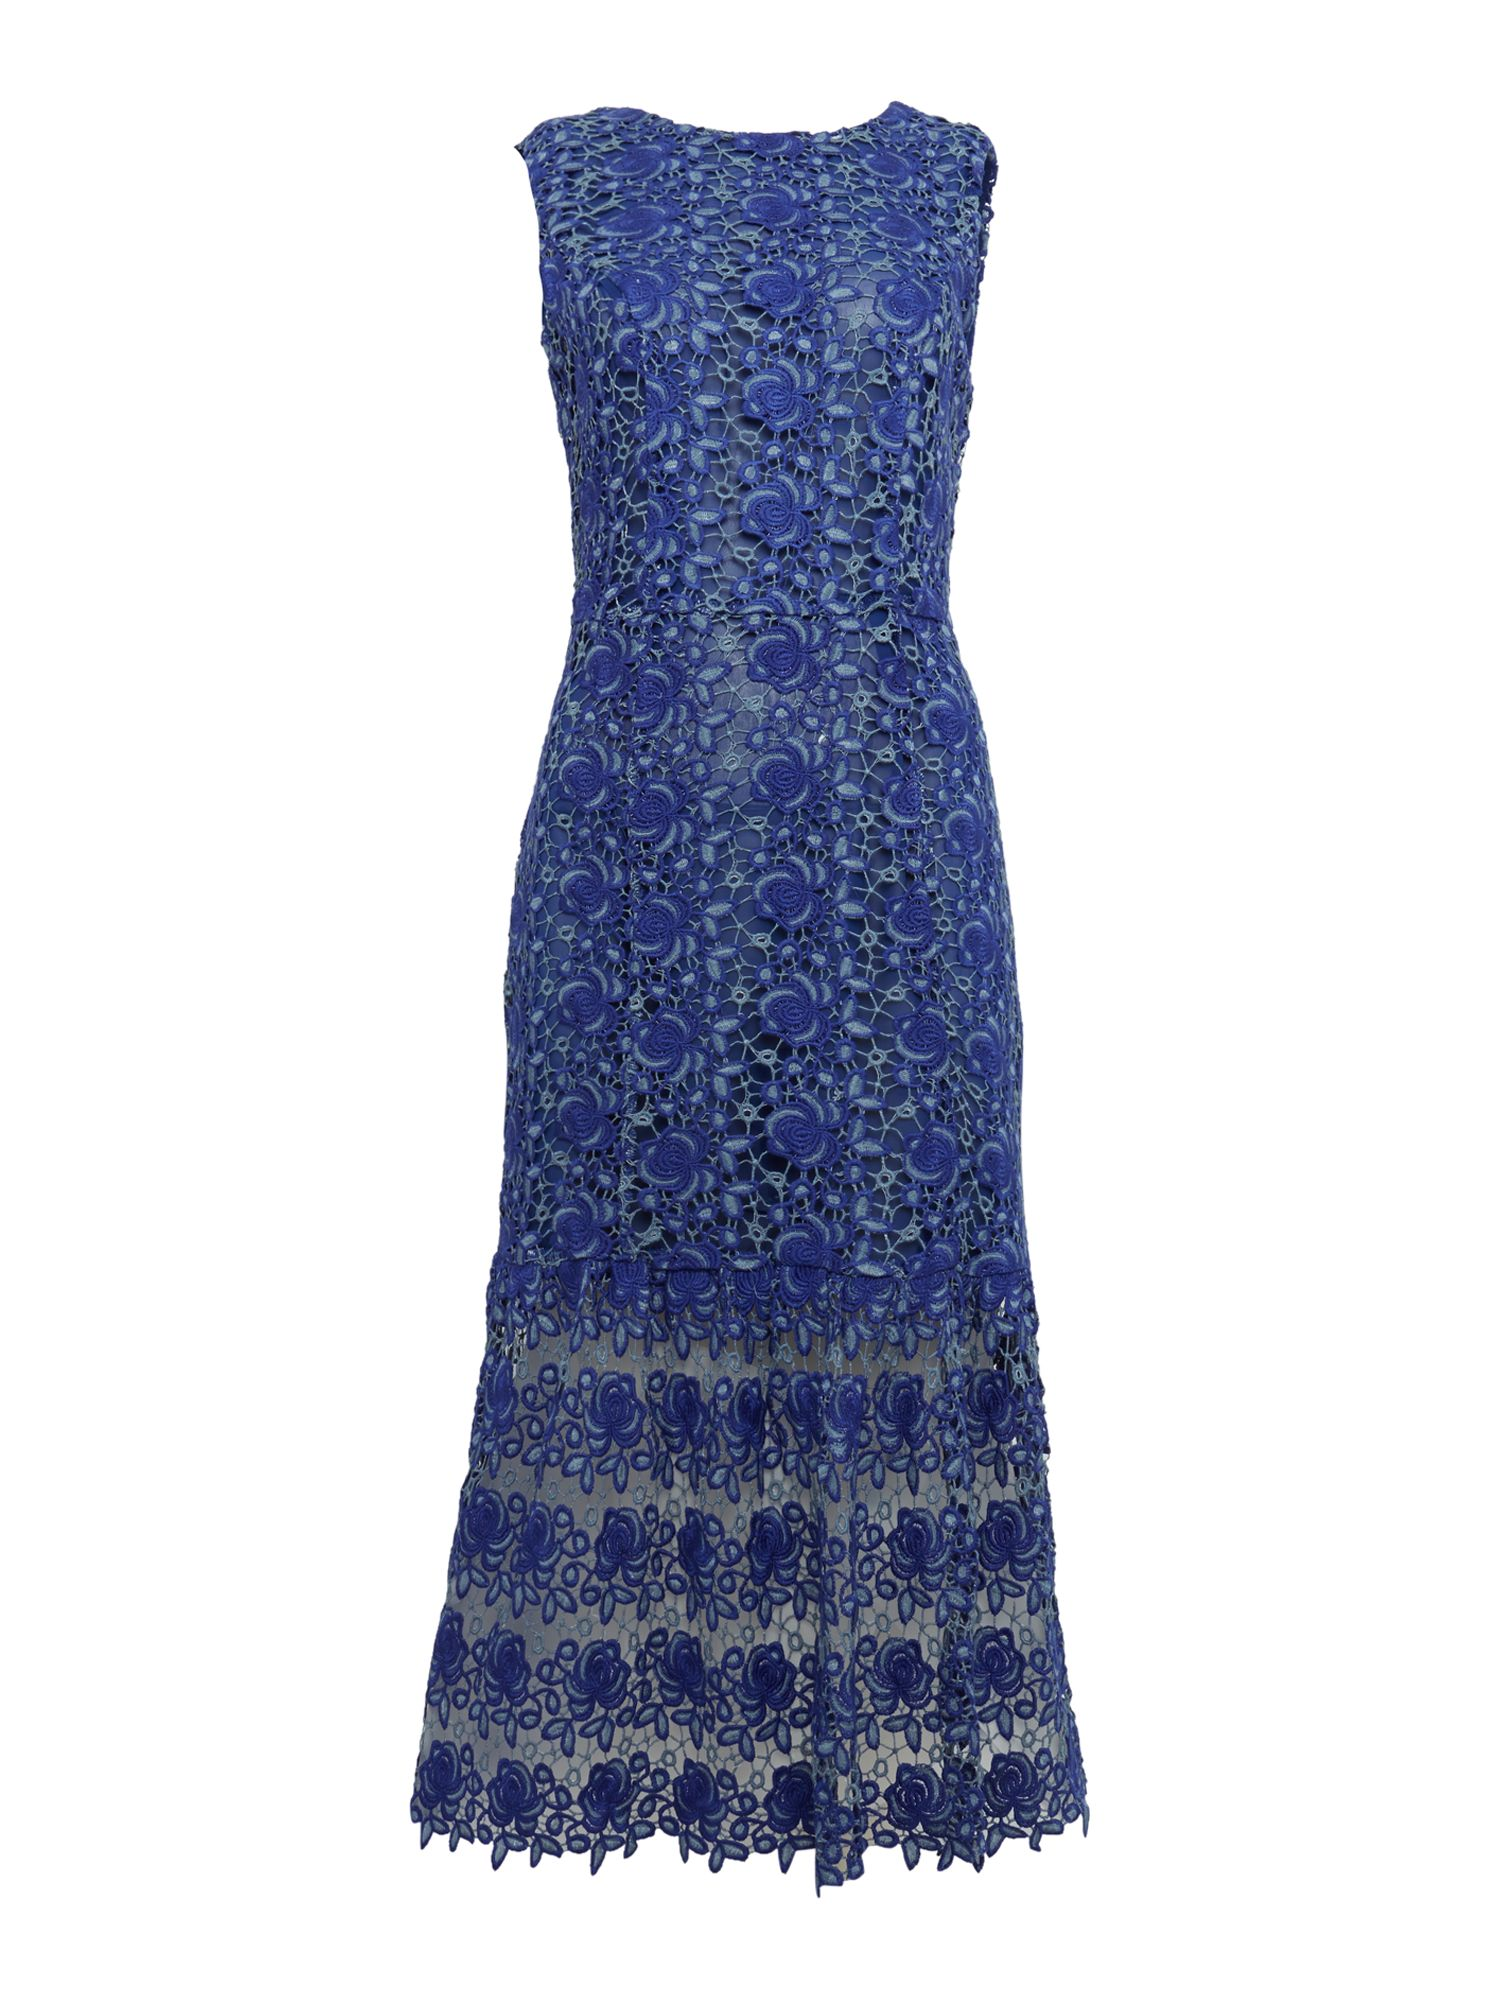 Lost Ink Sleeveless Drop Hem Crochet Lace Tunic Dress, Blue